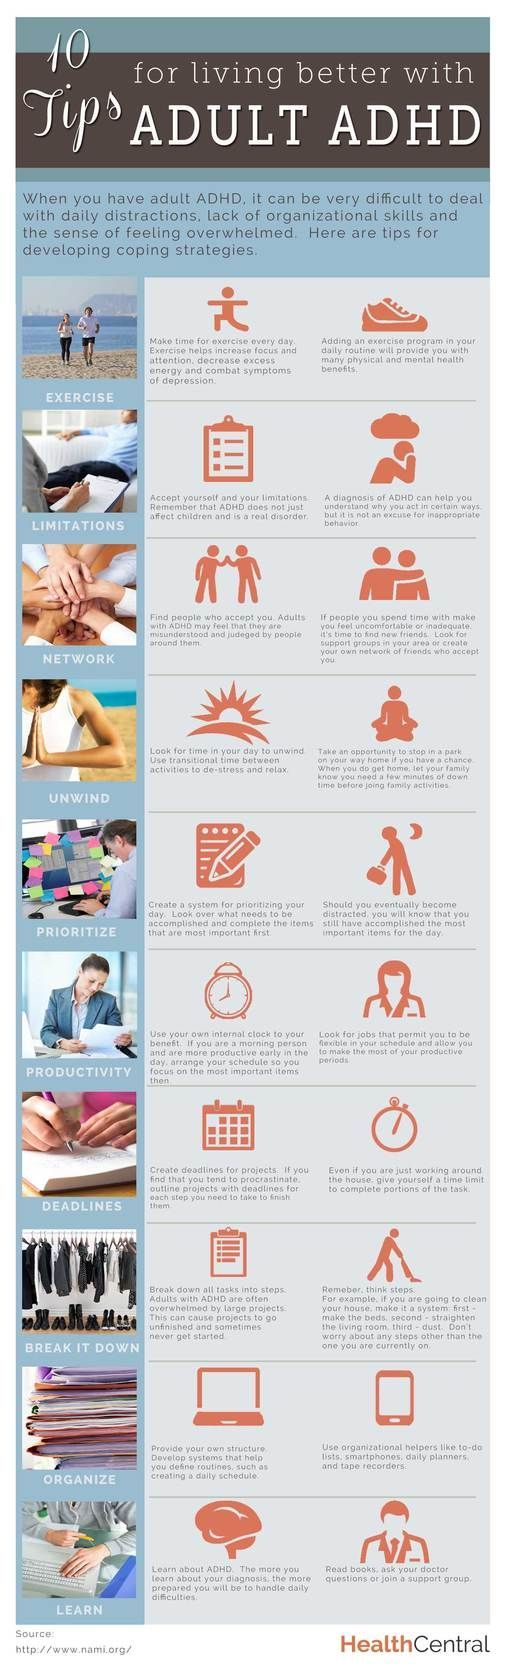 10 Tips for Living Better with Adult ADHD #Infographic - Exercise, Network, Unwind, Learn, Prioritize...""